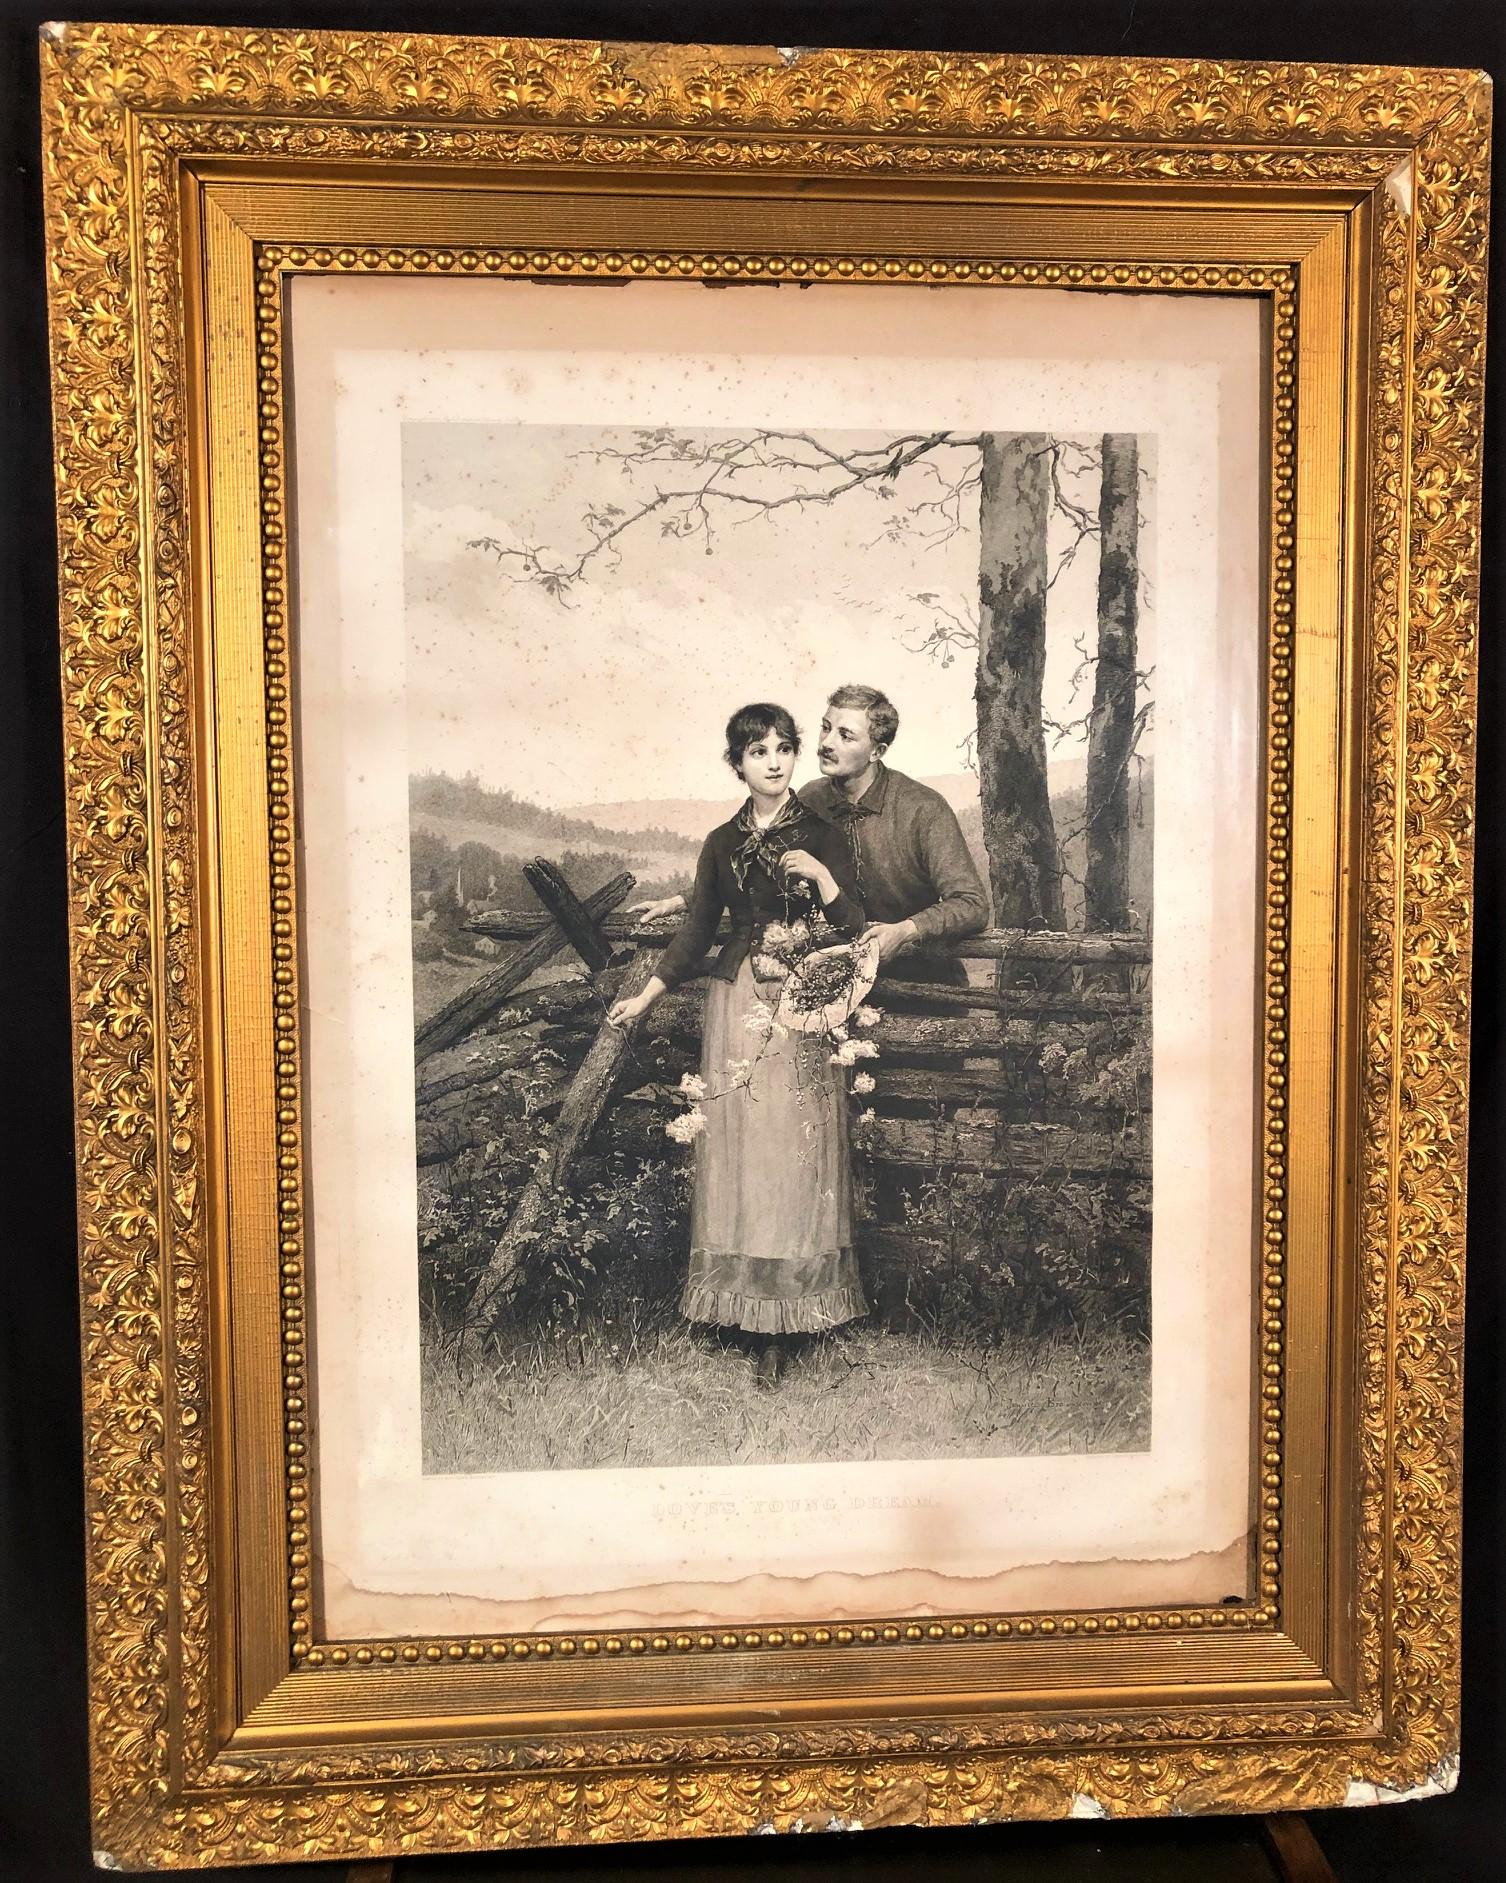 JENNIE AUGUSTA BROWNESCOMBE (1850-1936) FRAMED ENGRAVING TITLED LOVES YOUNG DREAM, COPYRIGHT 1886 IN LARGE ANTIQUE GOLD GILT FRAME MEASURING 47in x 37in